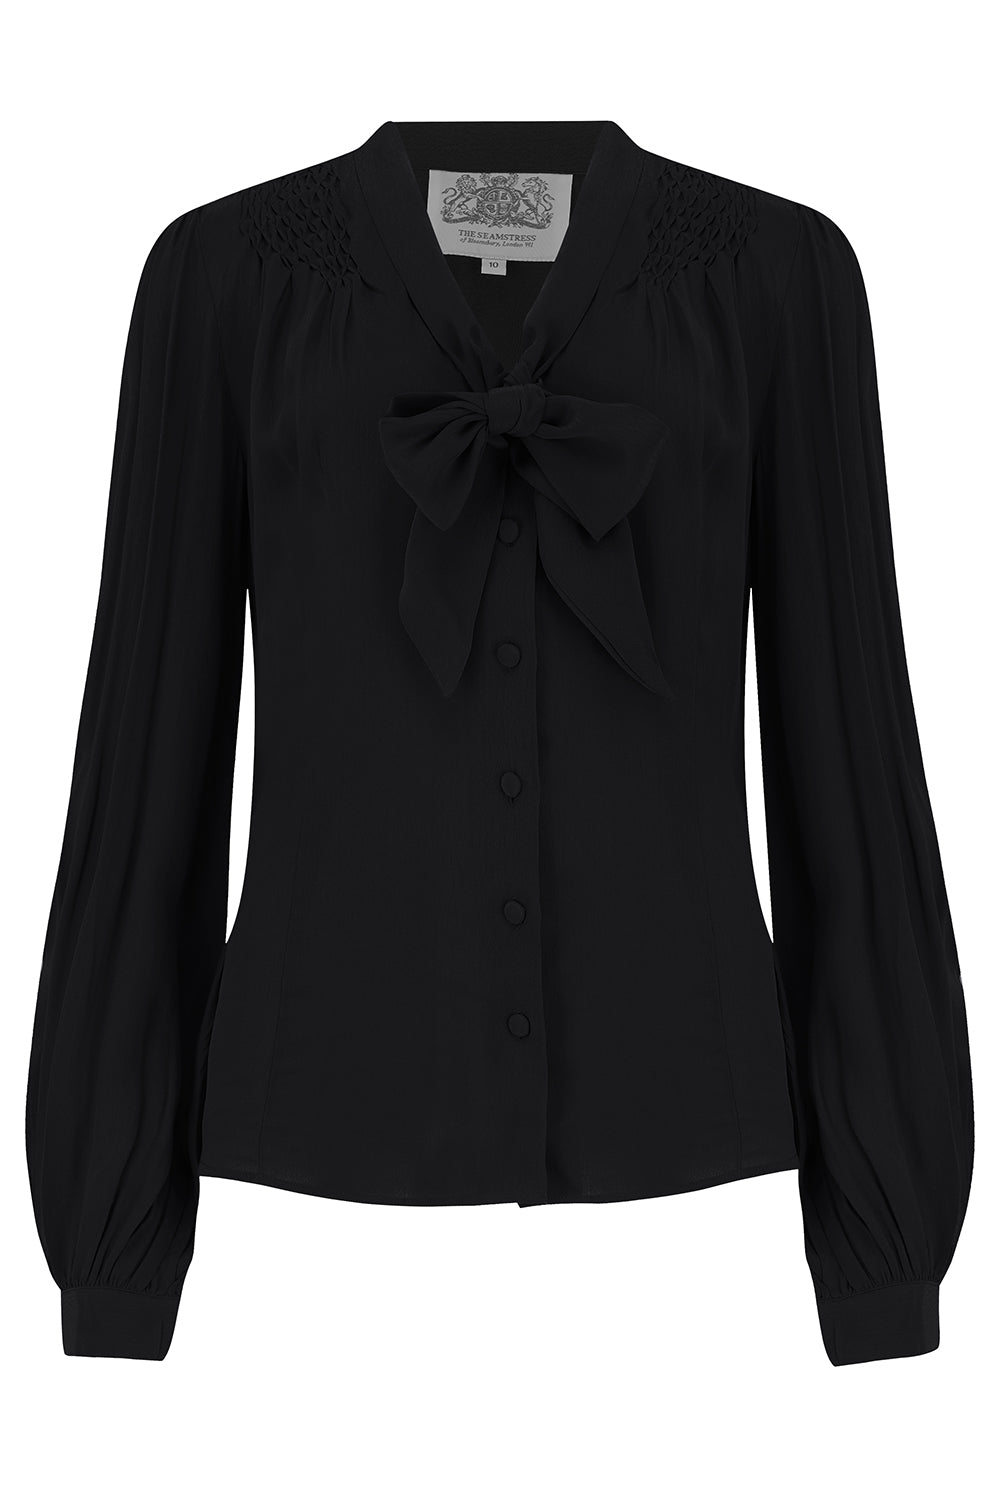 Eva Long Sleeve Blouse in Solid Black, Authentic & Classic 1940s Vintage Style